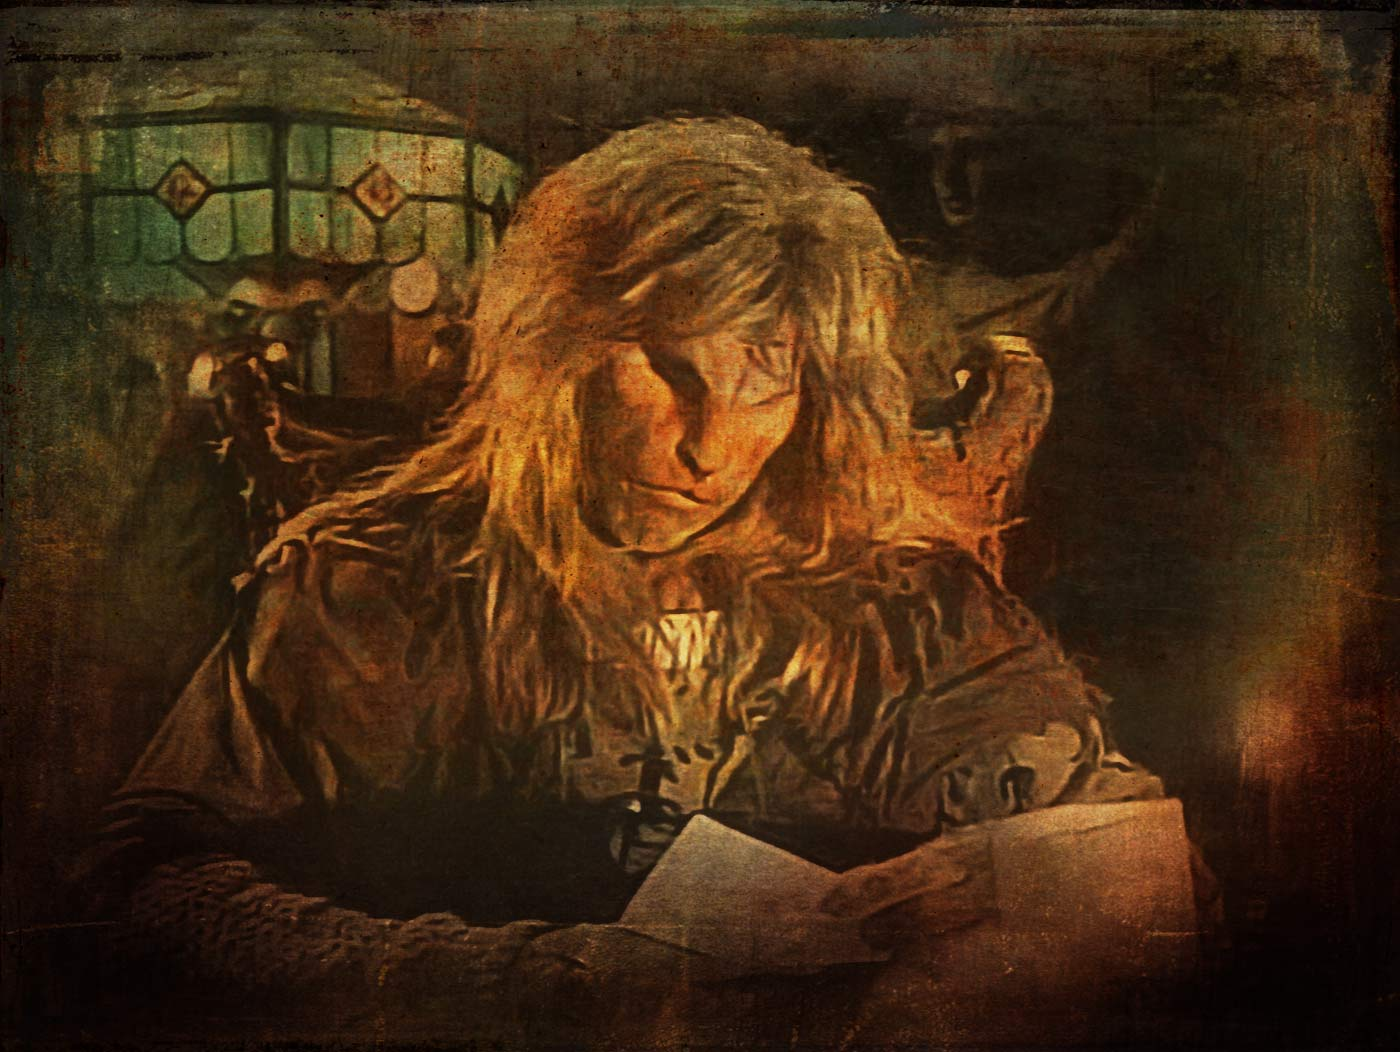 Vincent in his chamber, reading a note from Catherine